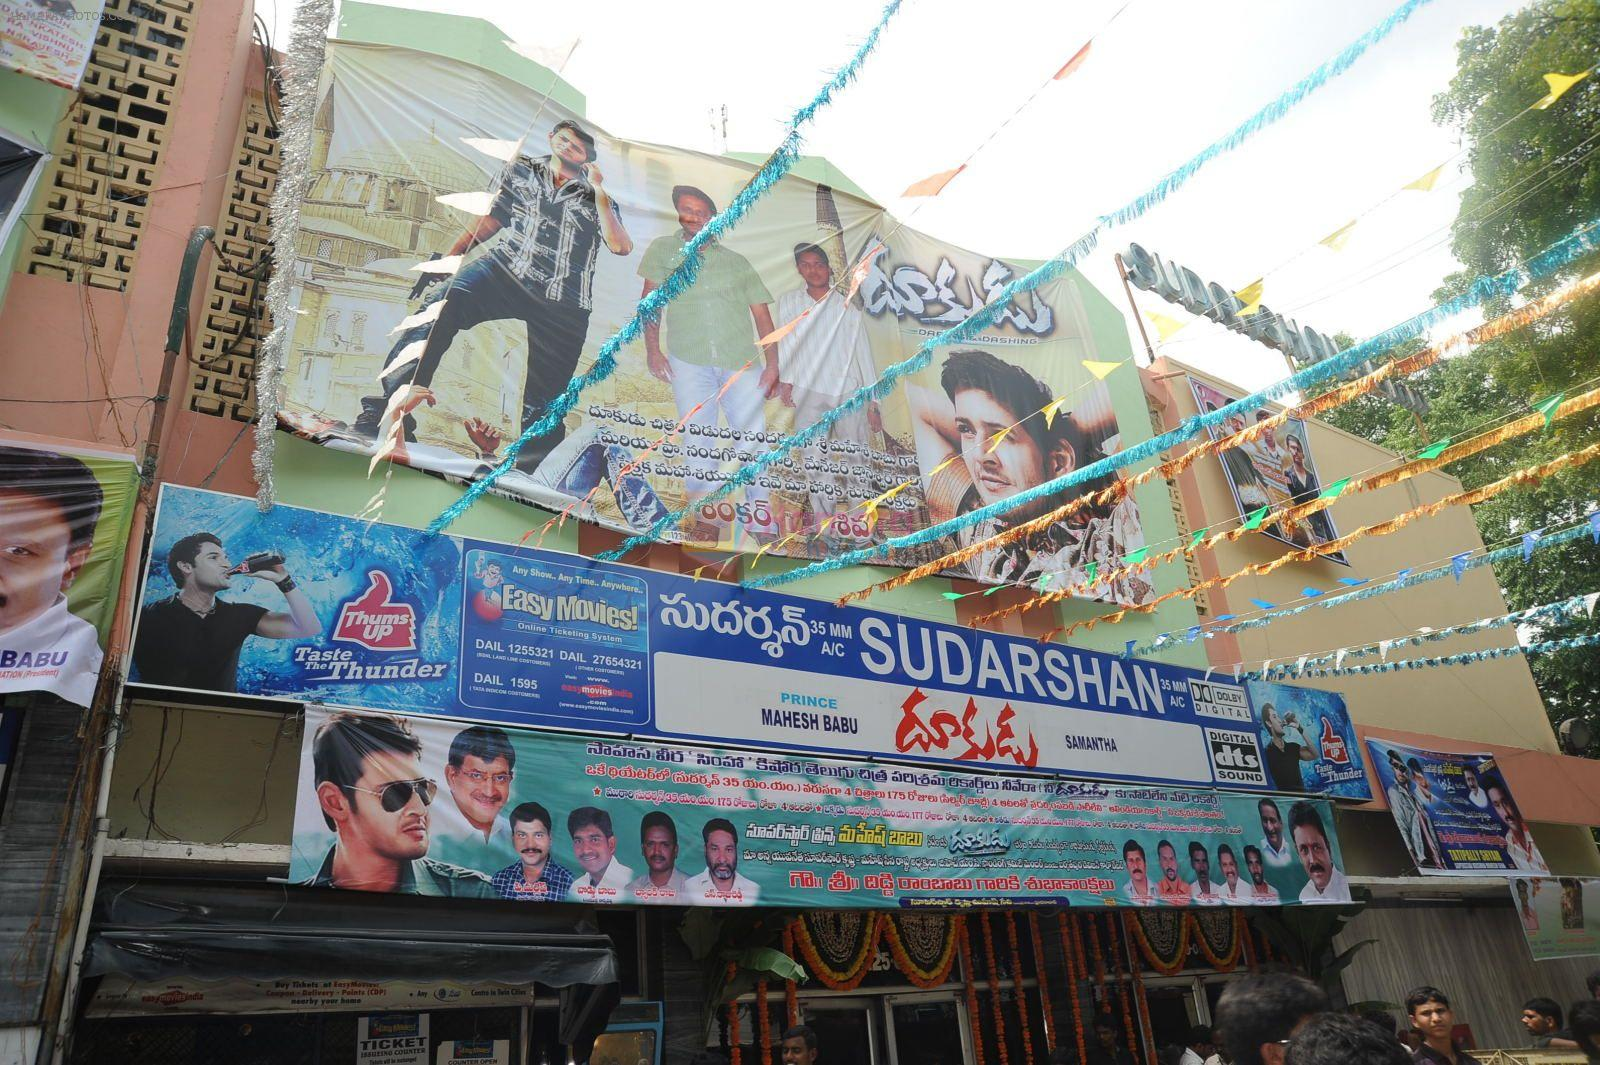 Dookudu Movie Premiere on 23rd September 2011